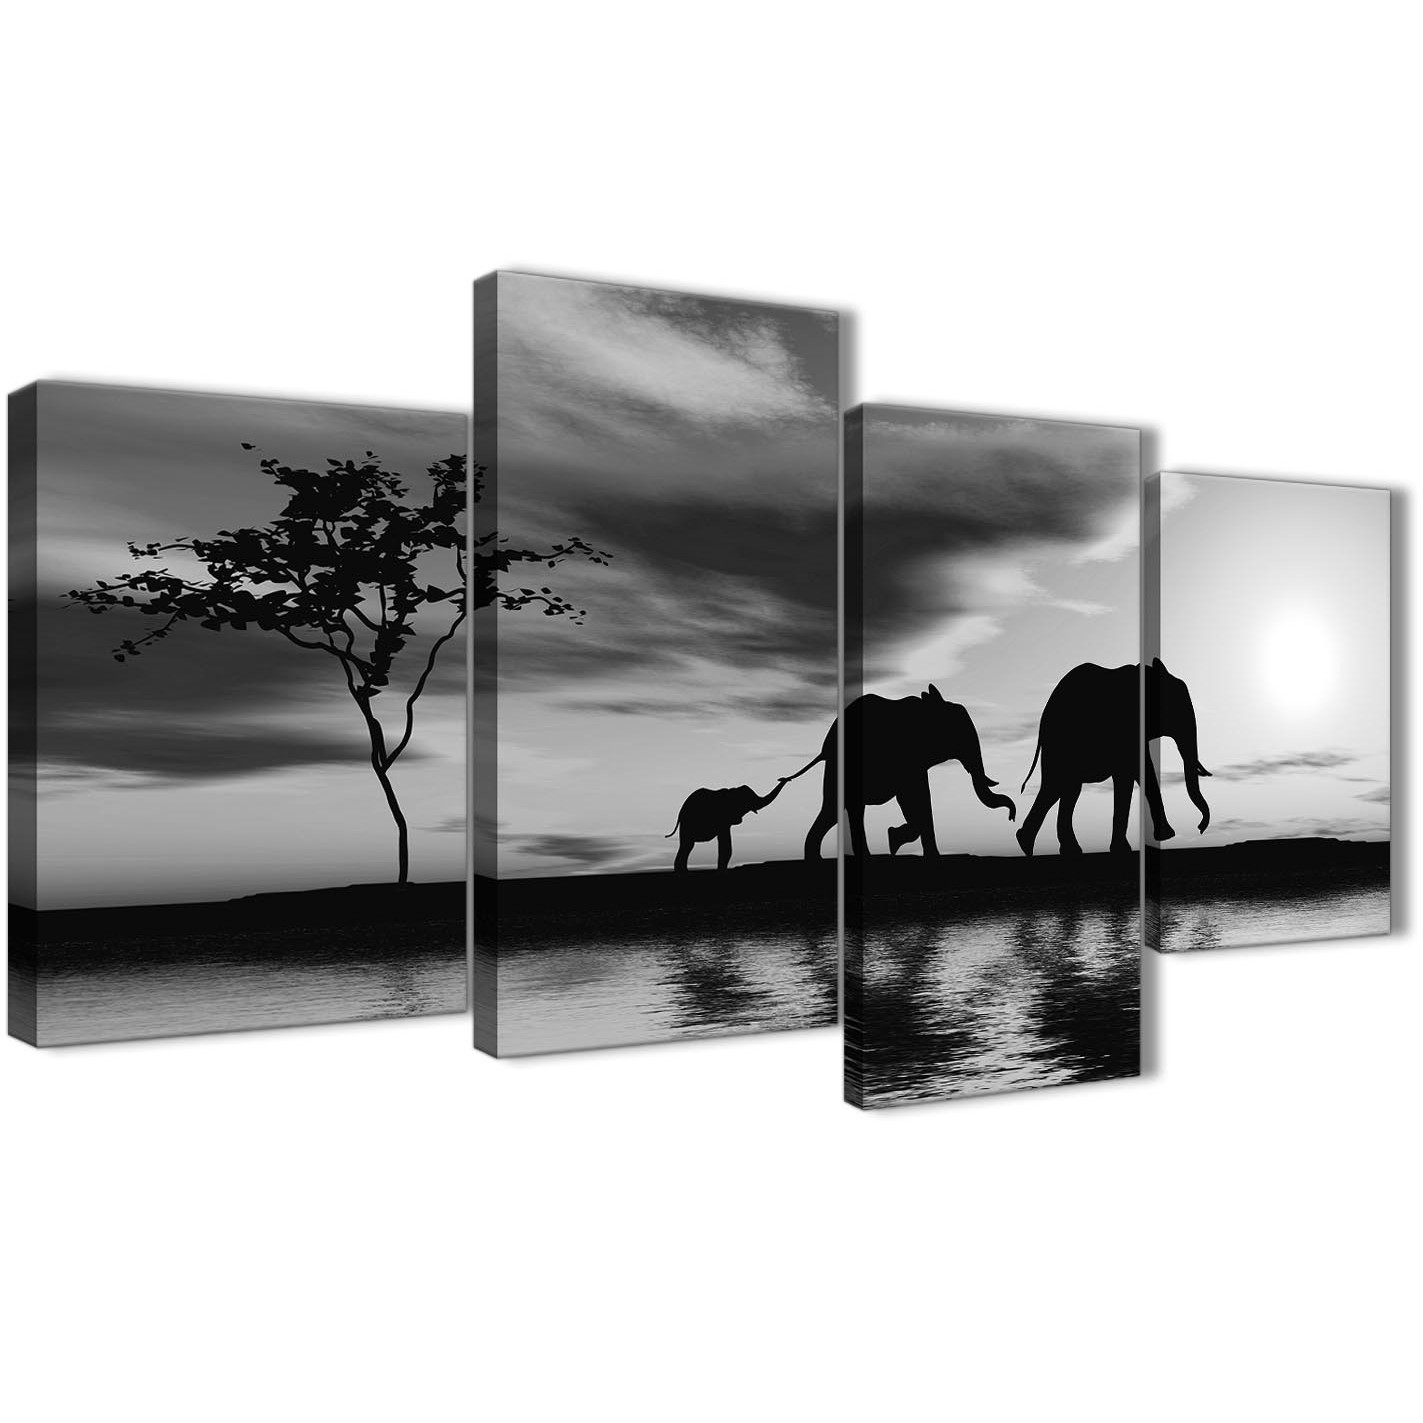 Amazing Oversized Large Black White African Sunset Elephants Canvas Wall Art Print  Multi 4 Set 130cm Wide Display Gallery Item 1 ...